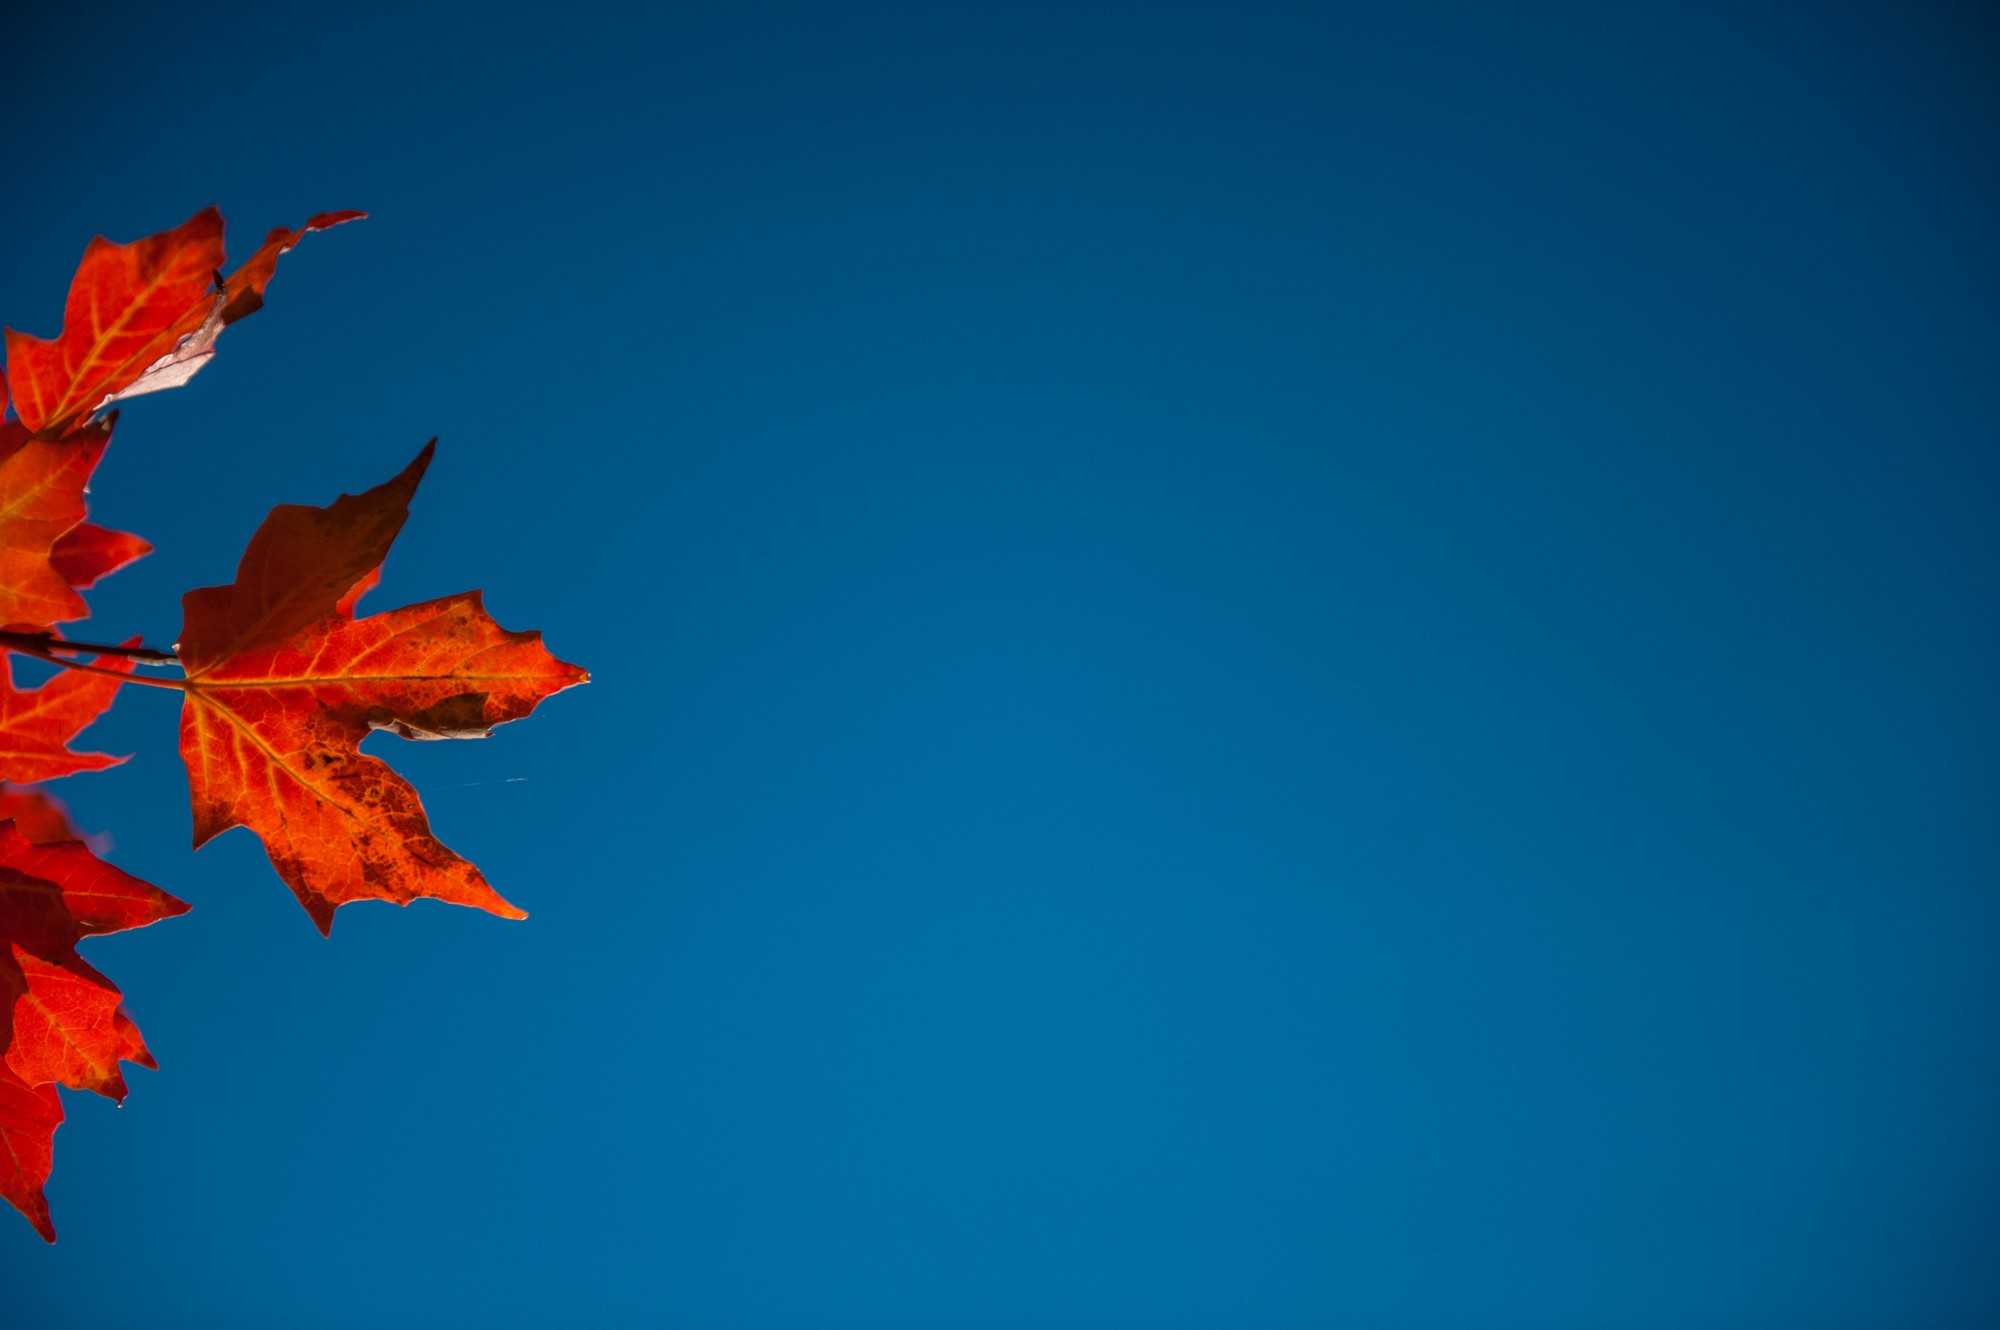 Deep, blue sky with red maple leaves peeking on one edge.